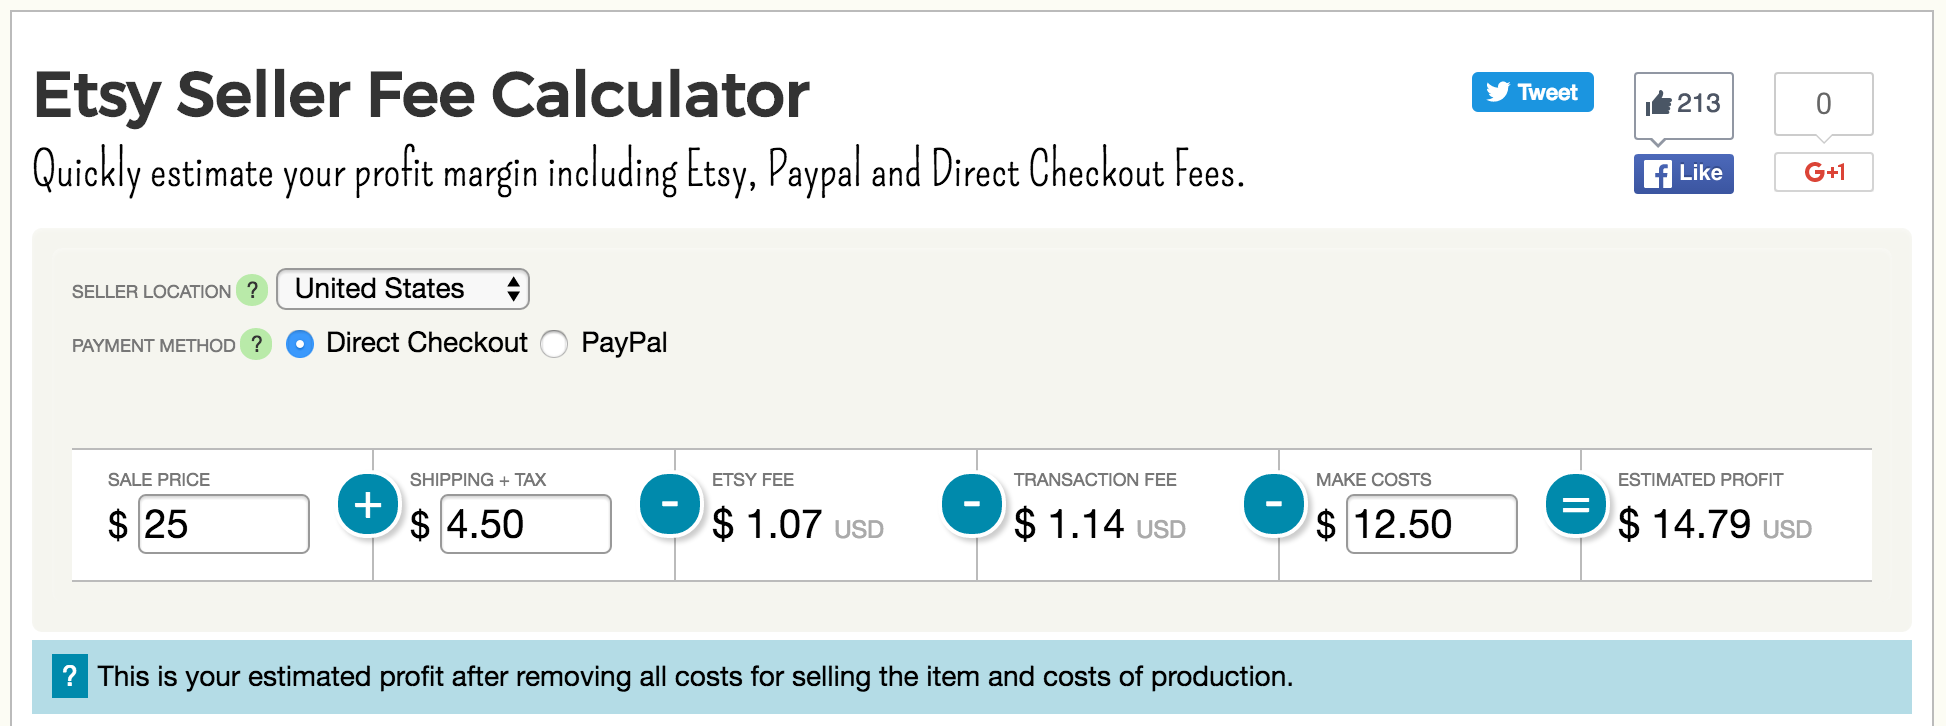 Etsy seller fee and profit calculator improvements